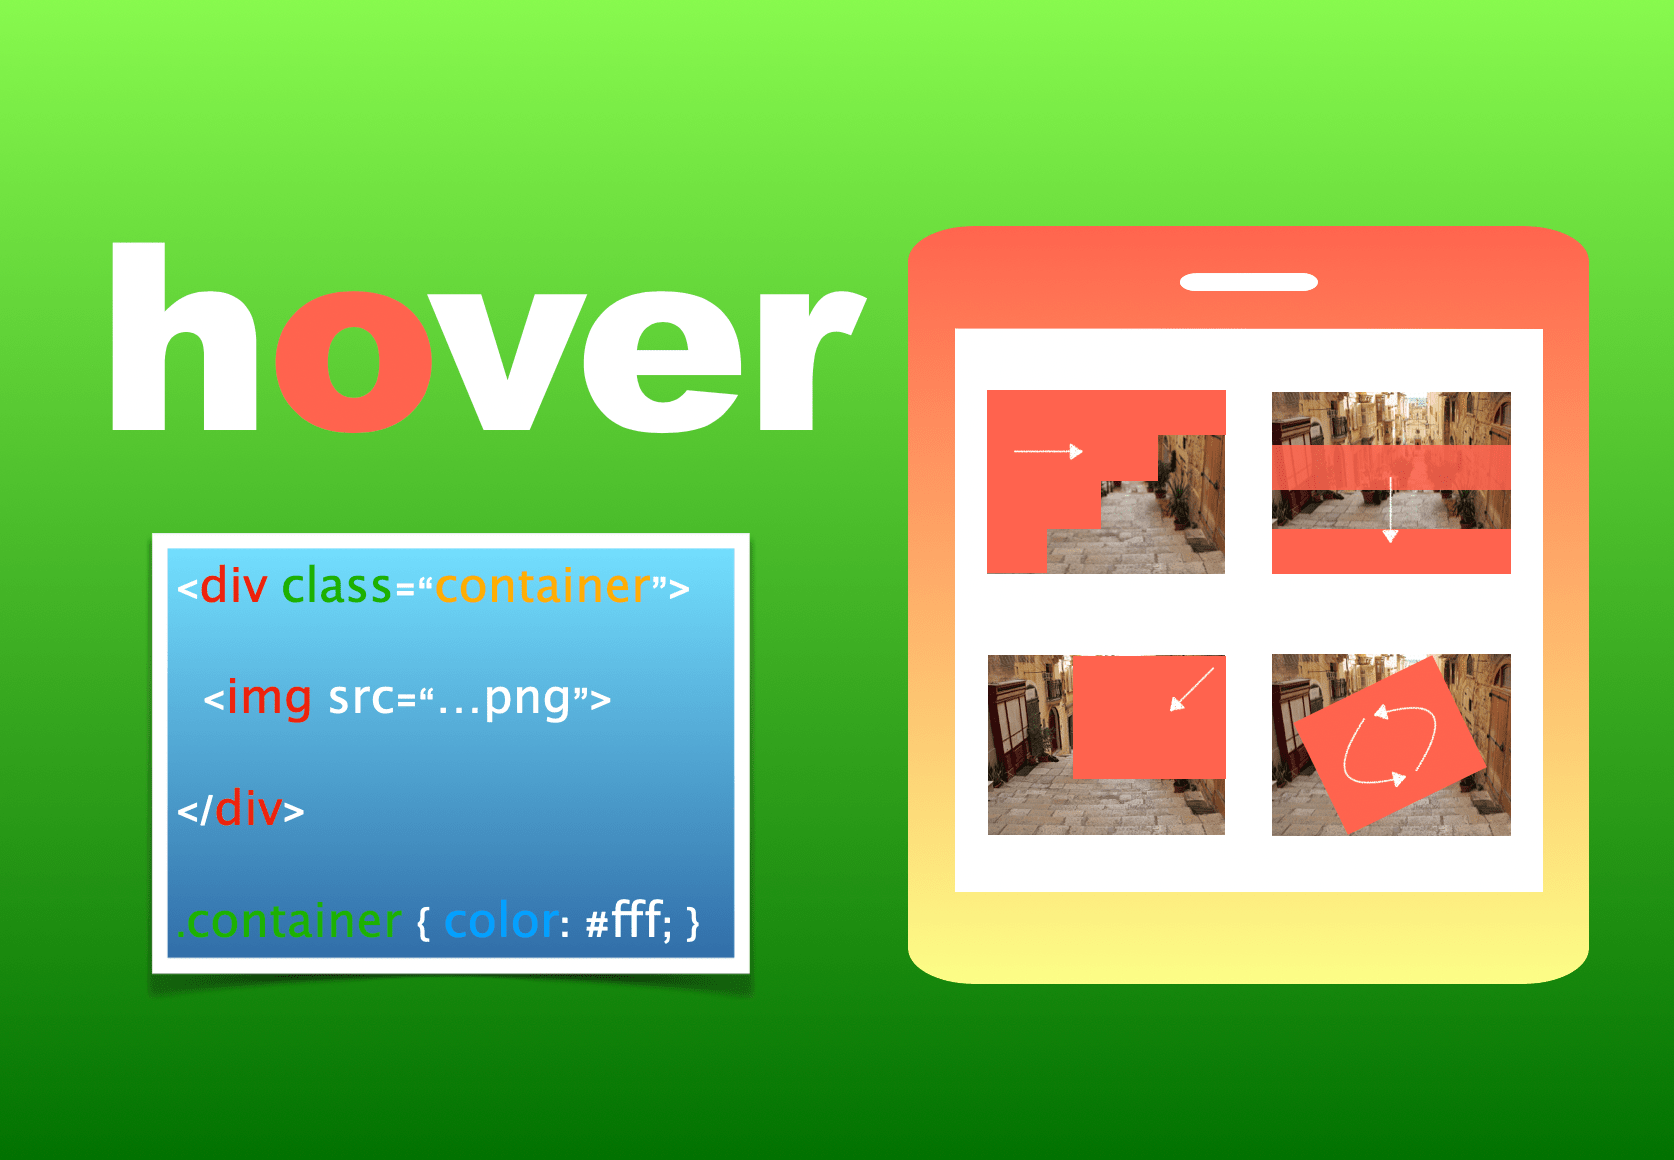 hover-4effect-image.png